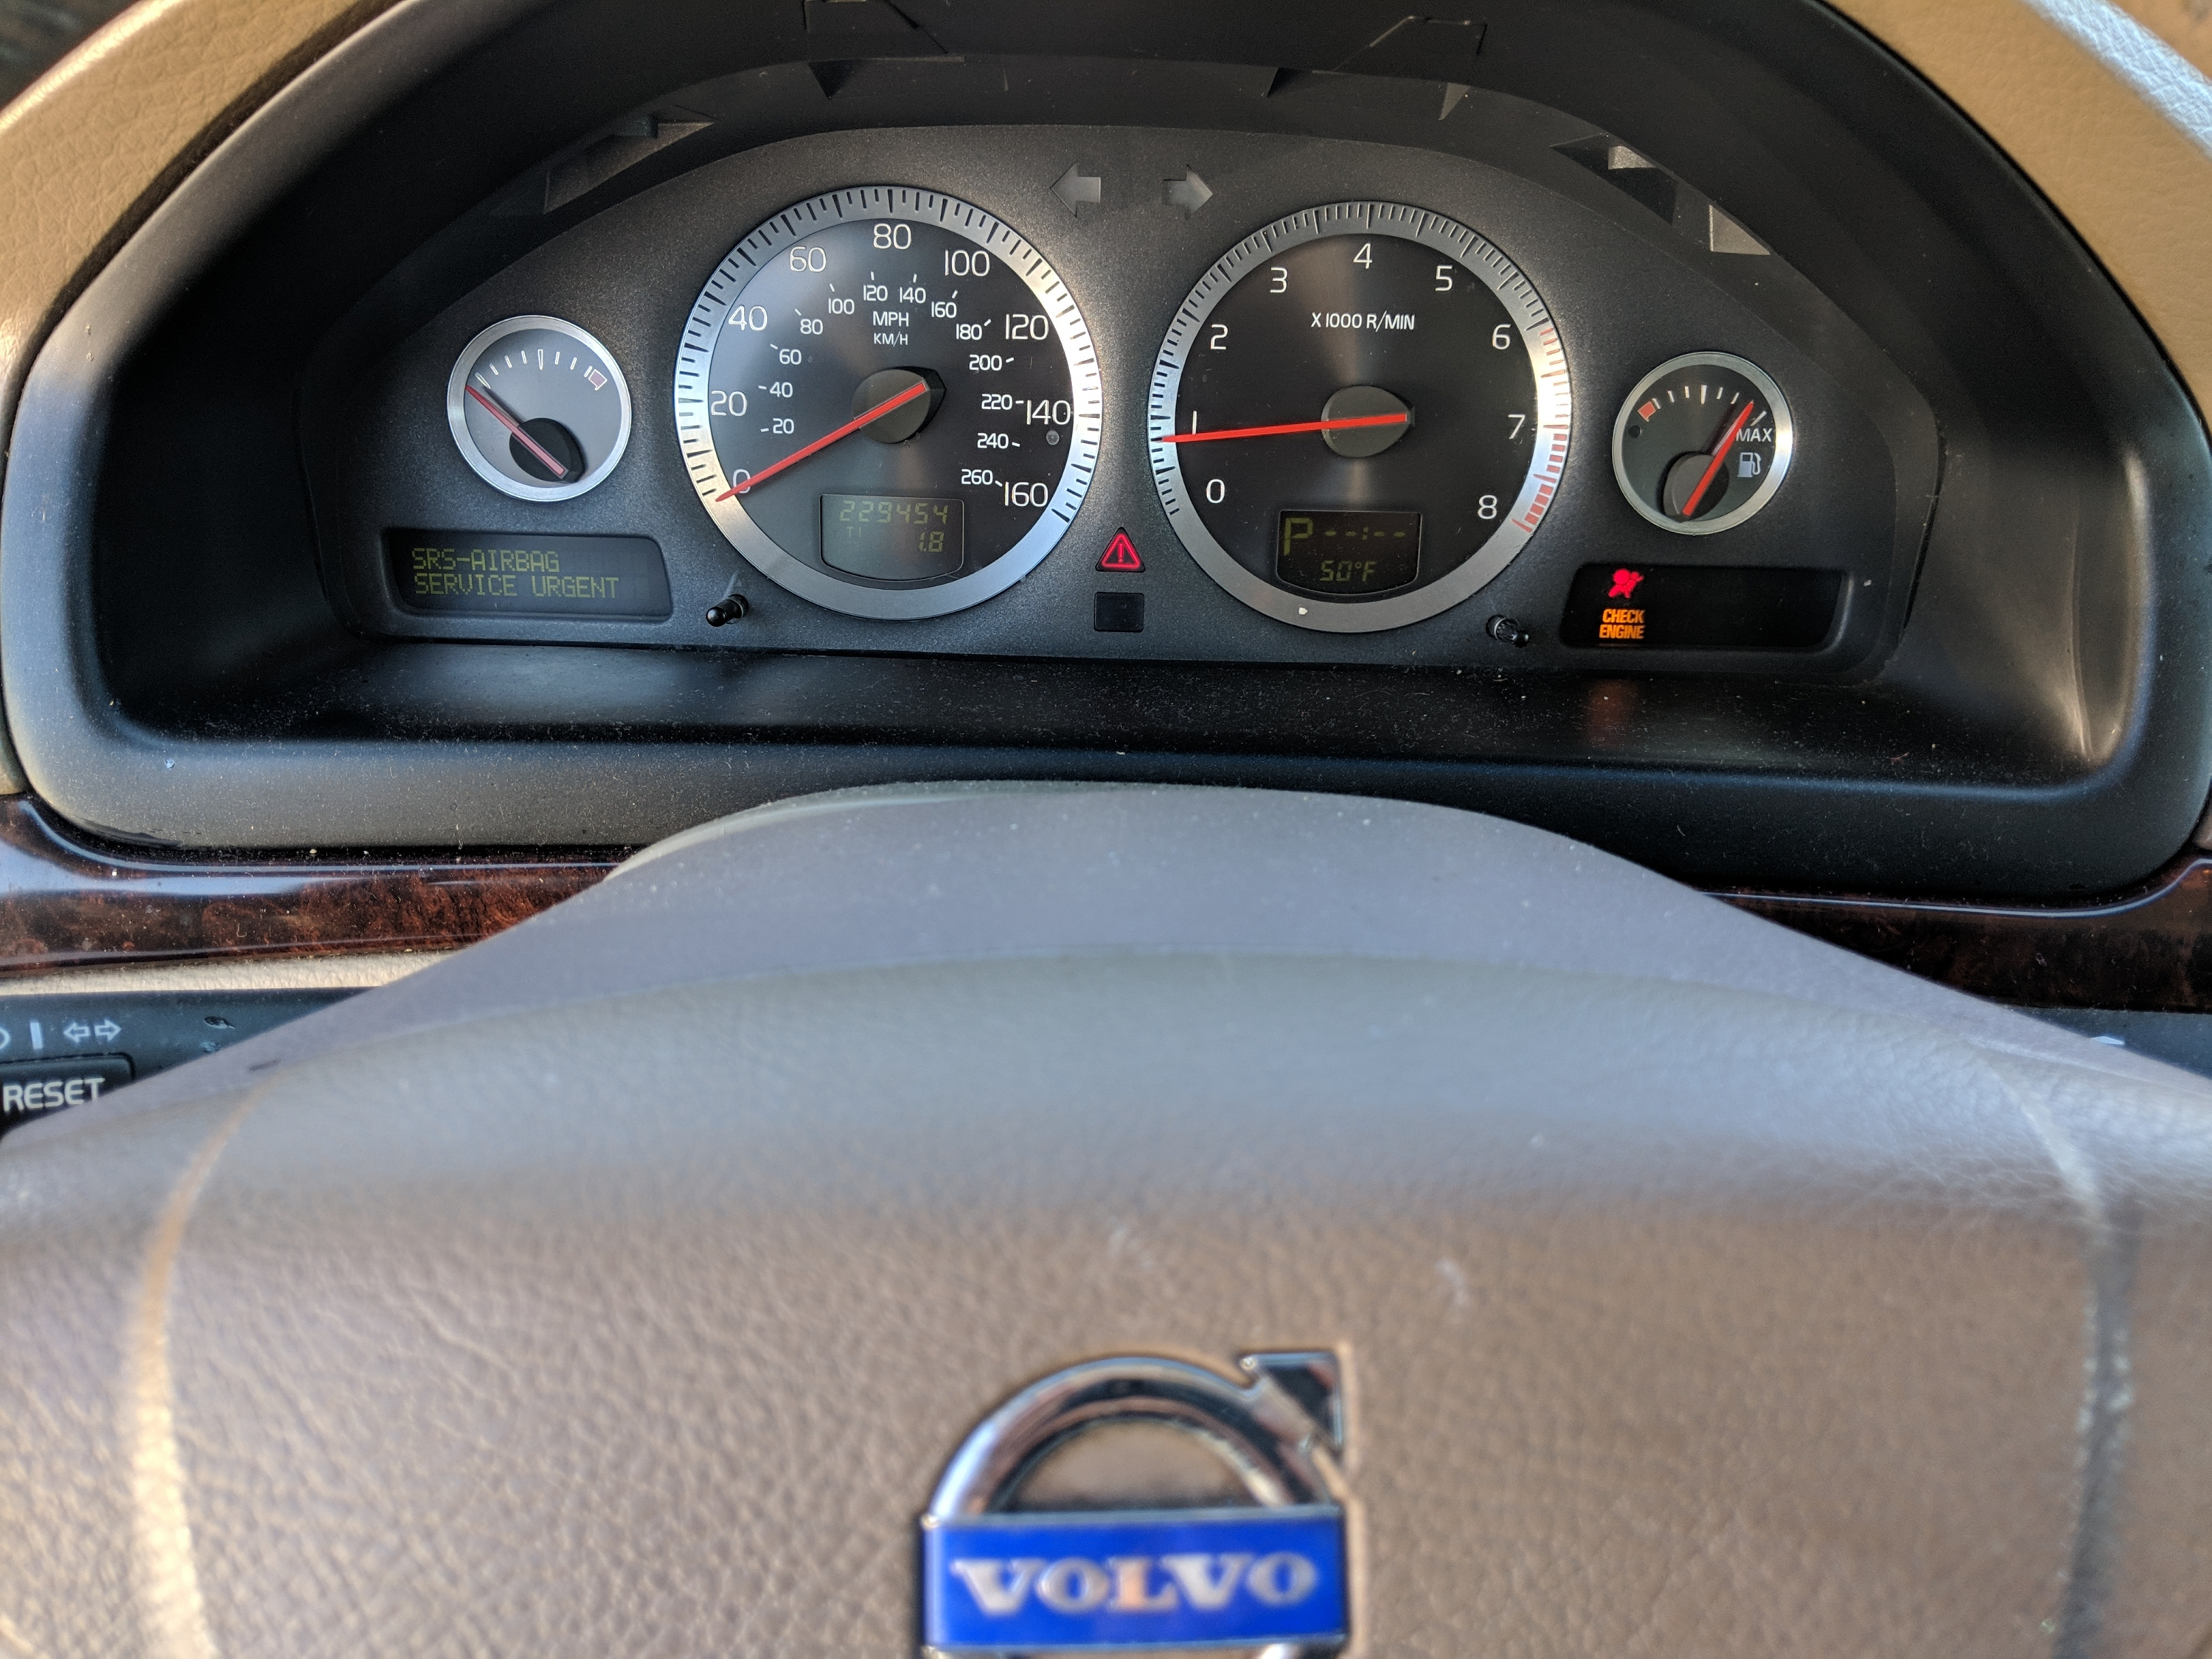 Common Volvo Instrument Cluster Problems & Solutions